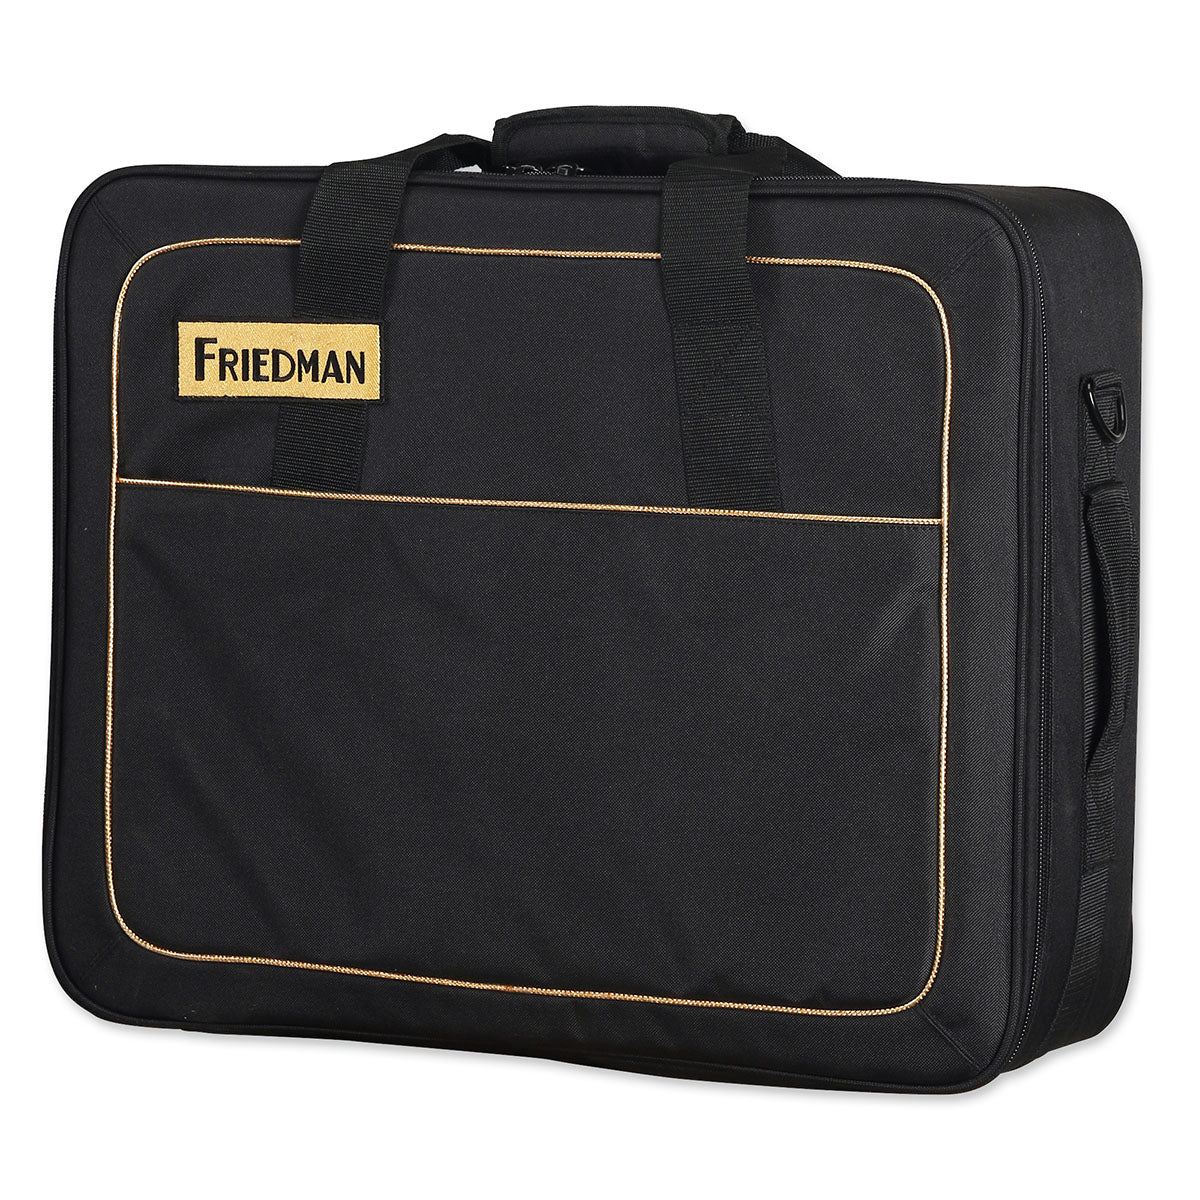 Friedman Tour Pro 1525 - Gold Package